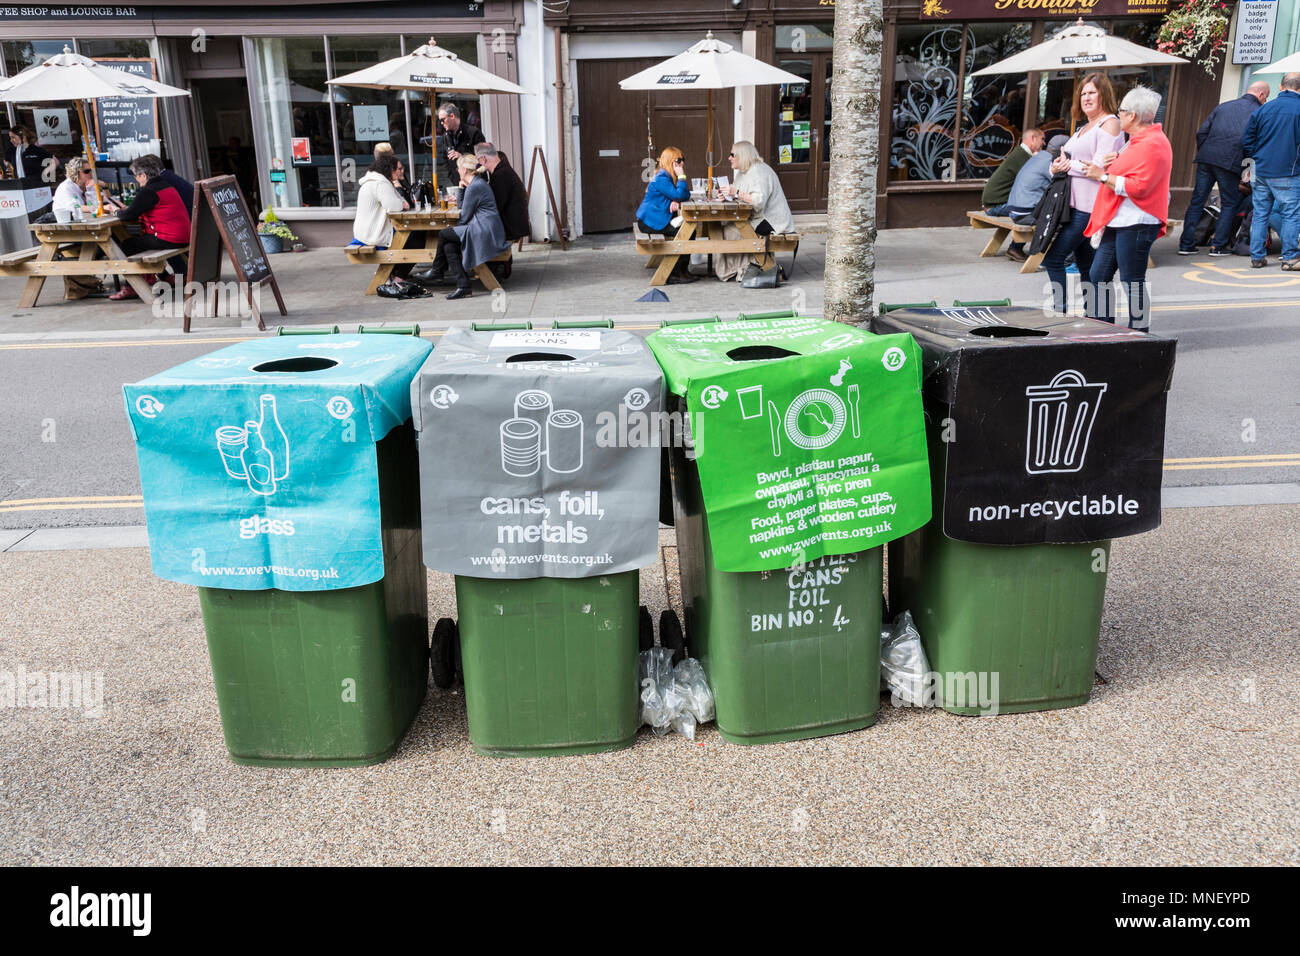 Recycling and litter bins in street at food festival, Abergavenny, Wales, UK - Stock Image